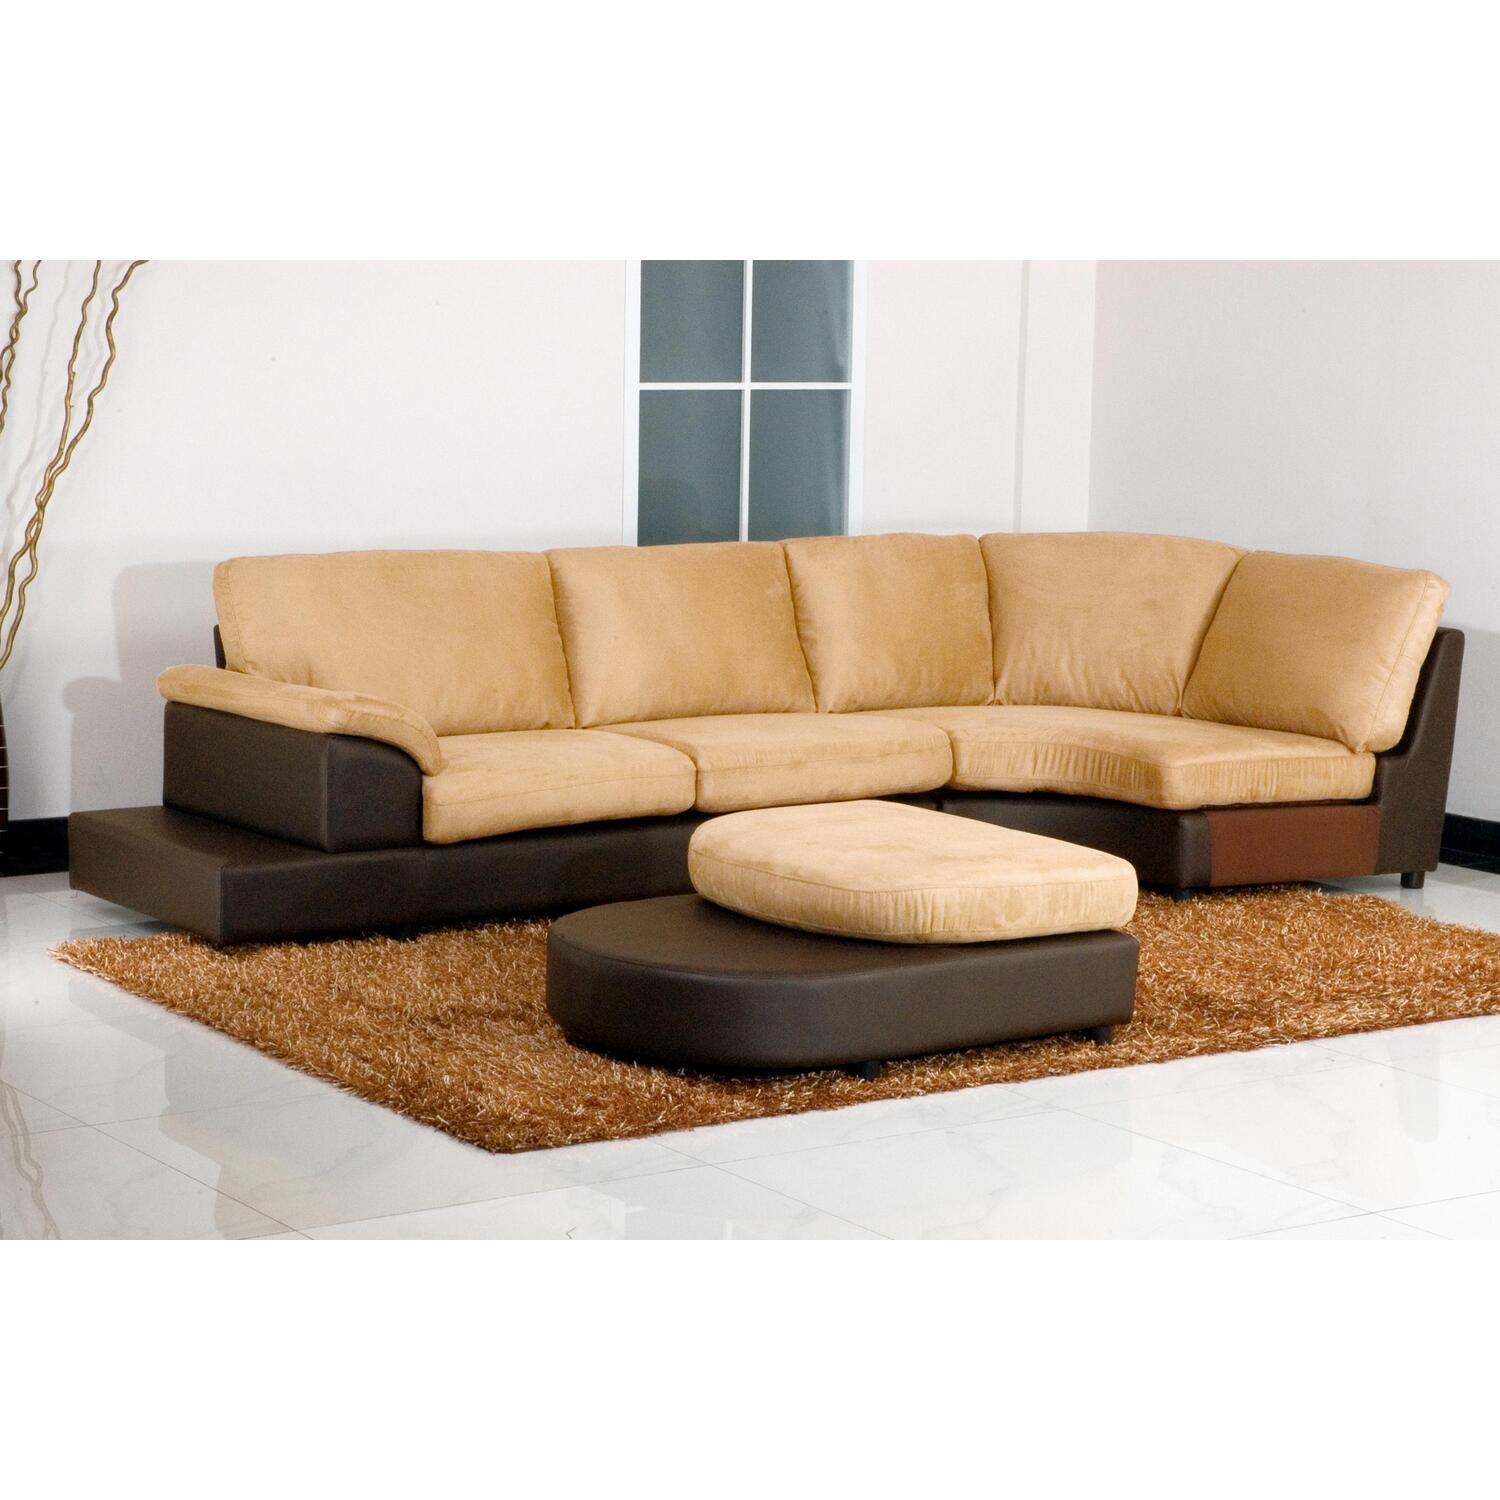 Abbyson Living Mocha Microsuede Sectional Sofa With Ottoman By Oj Commerce Abbl30 1